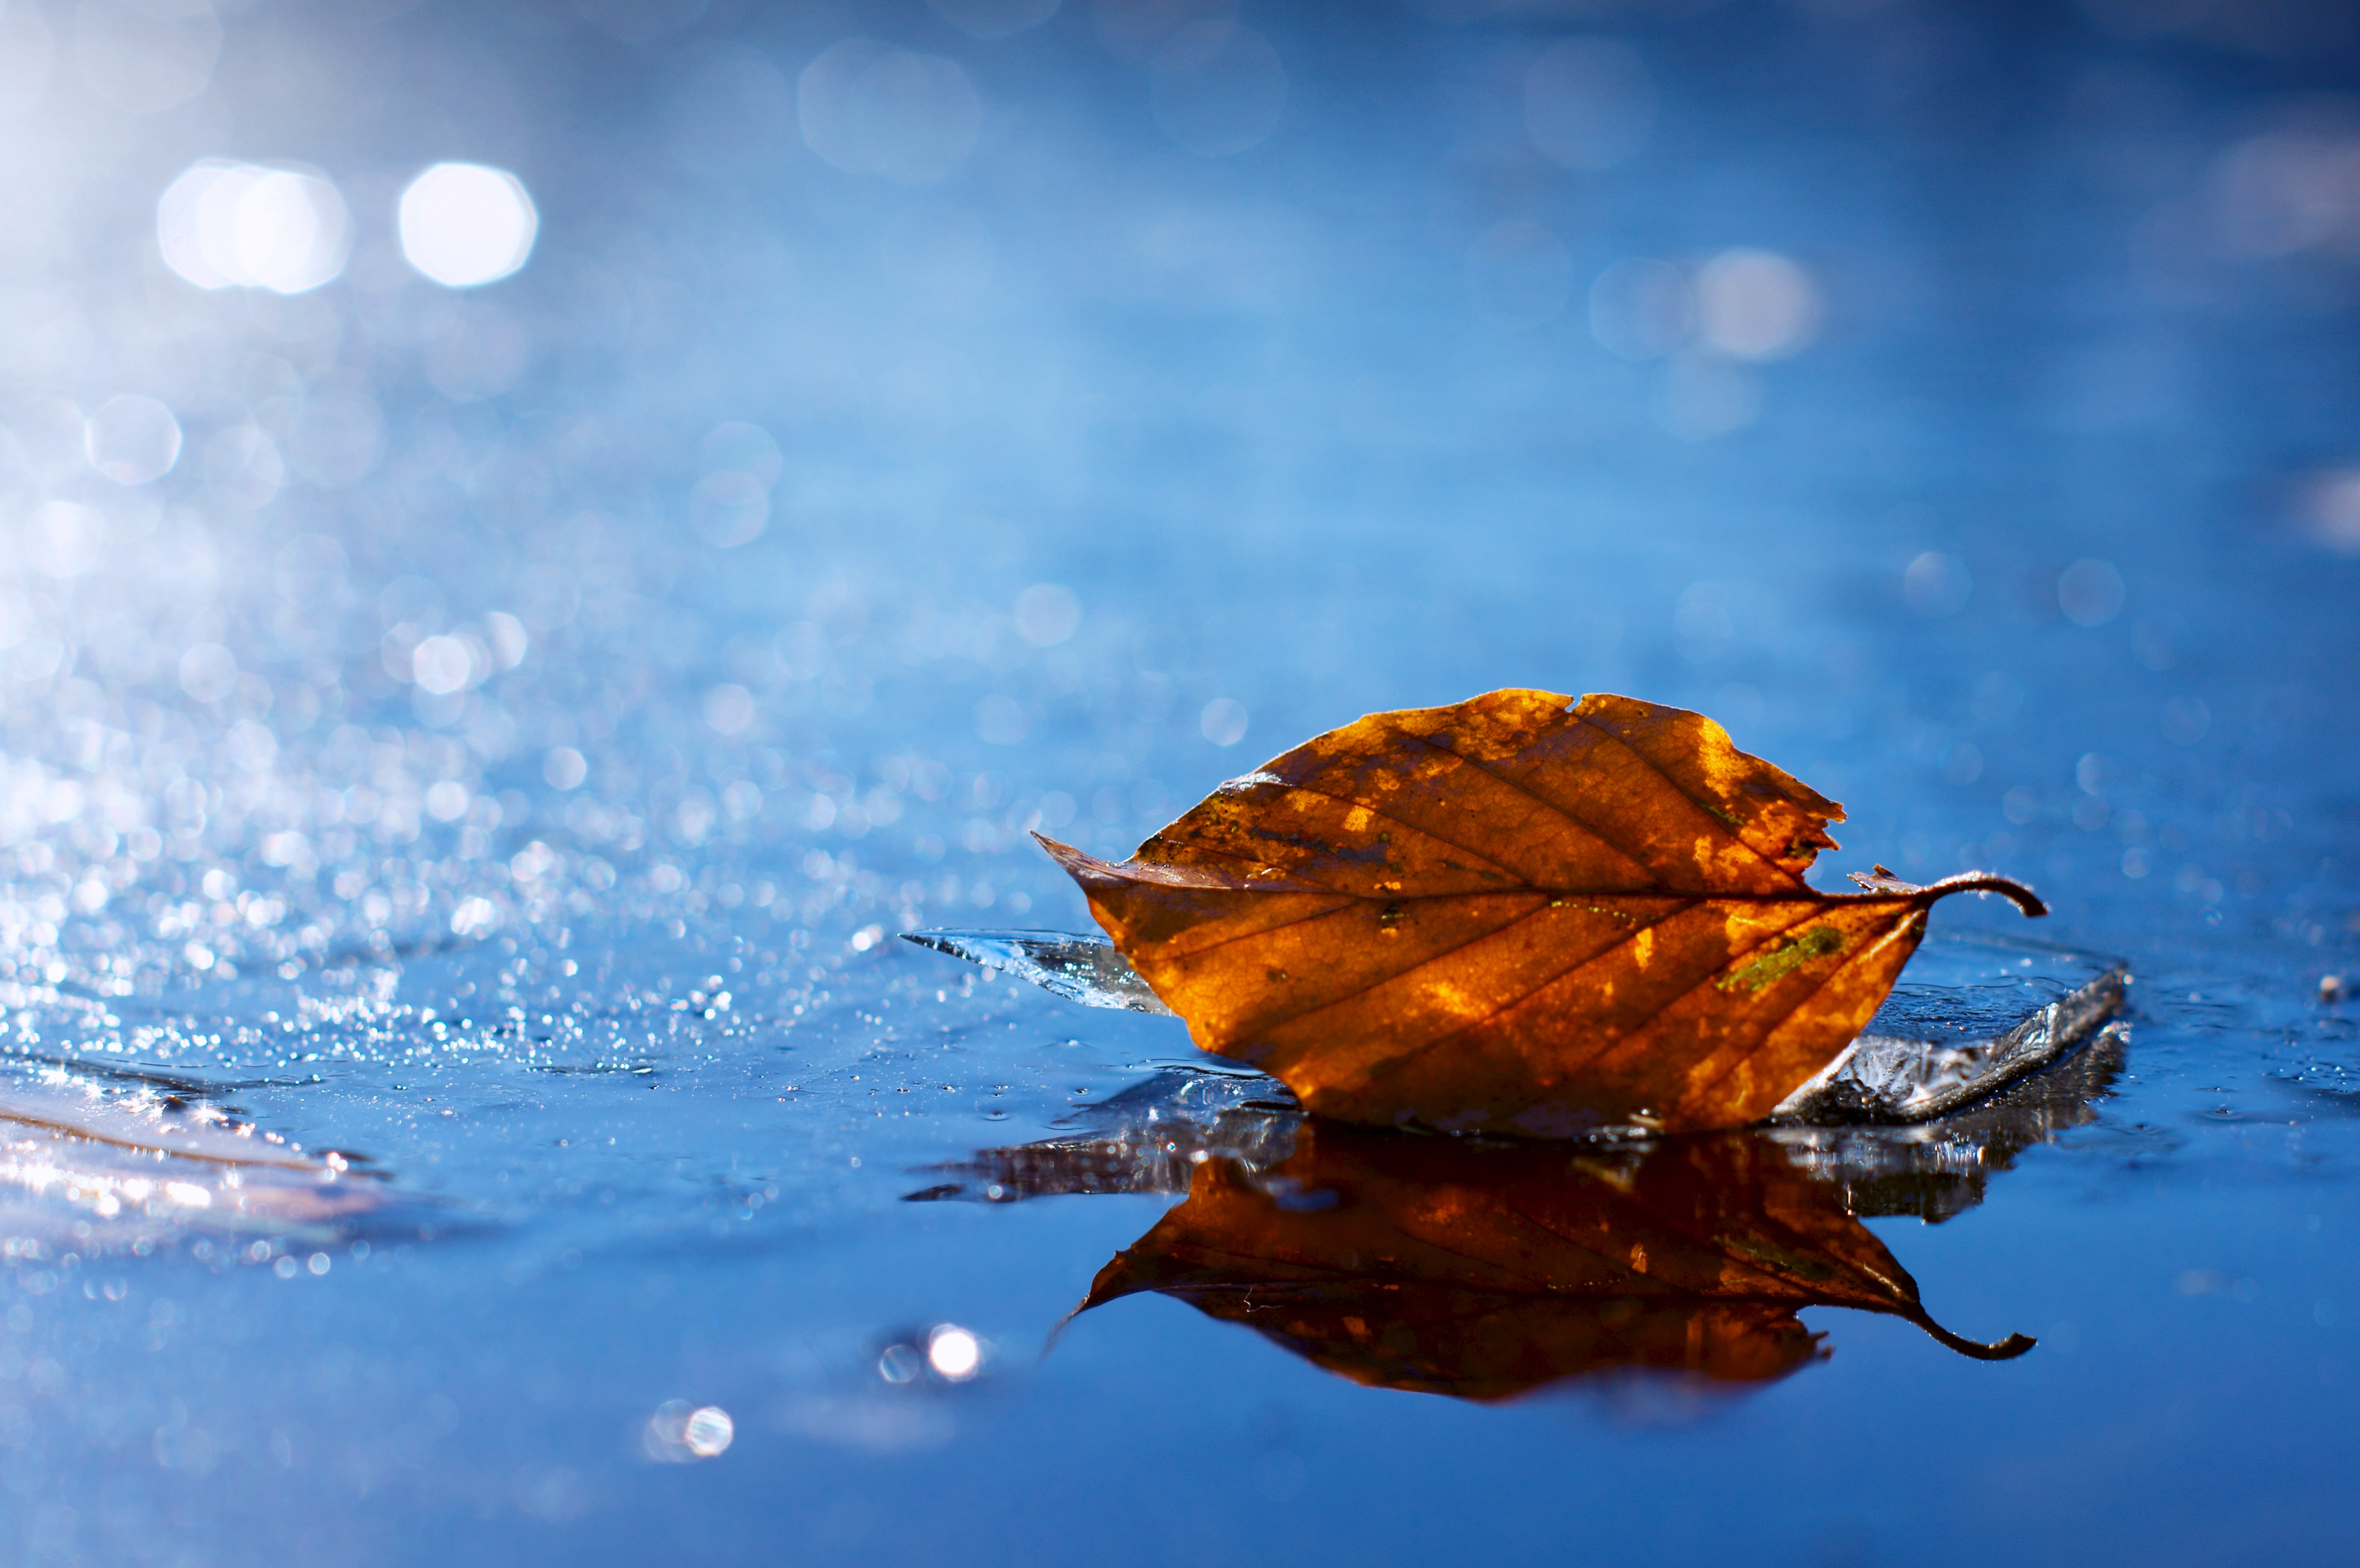 115753 download wallpaper Autumn, Water, Macro, Liquid, Sheet, Leaf, Dry, Fallen screensavers and pictures for free